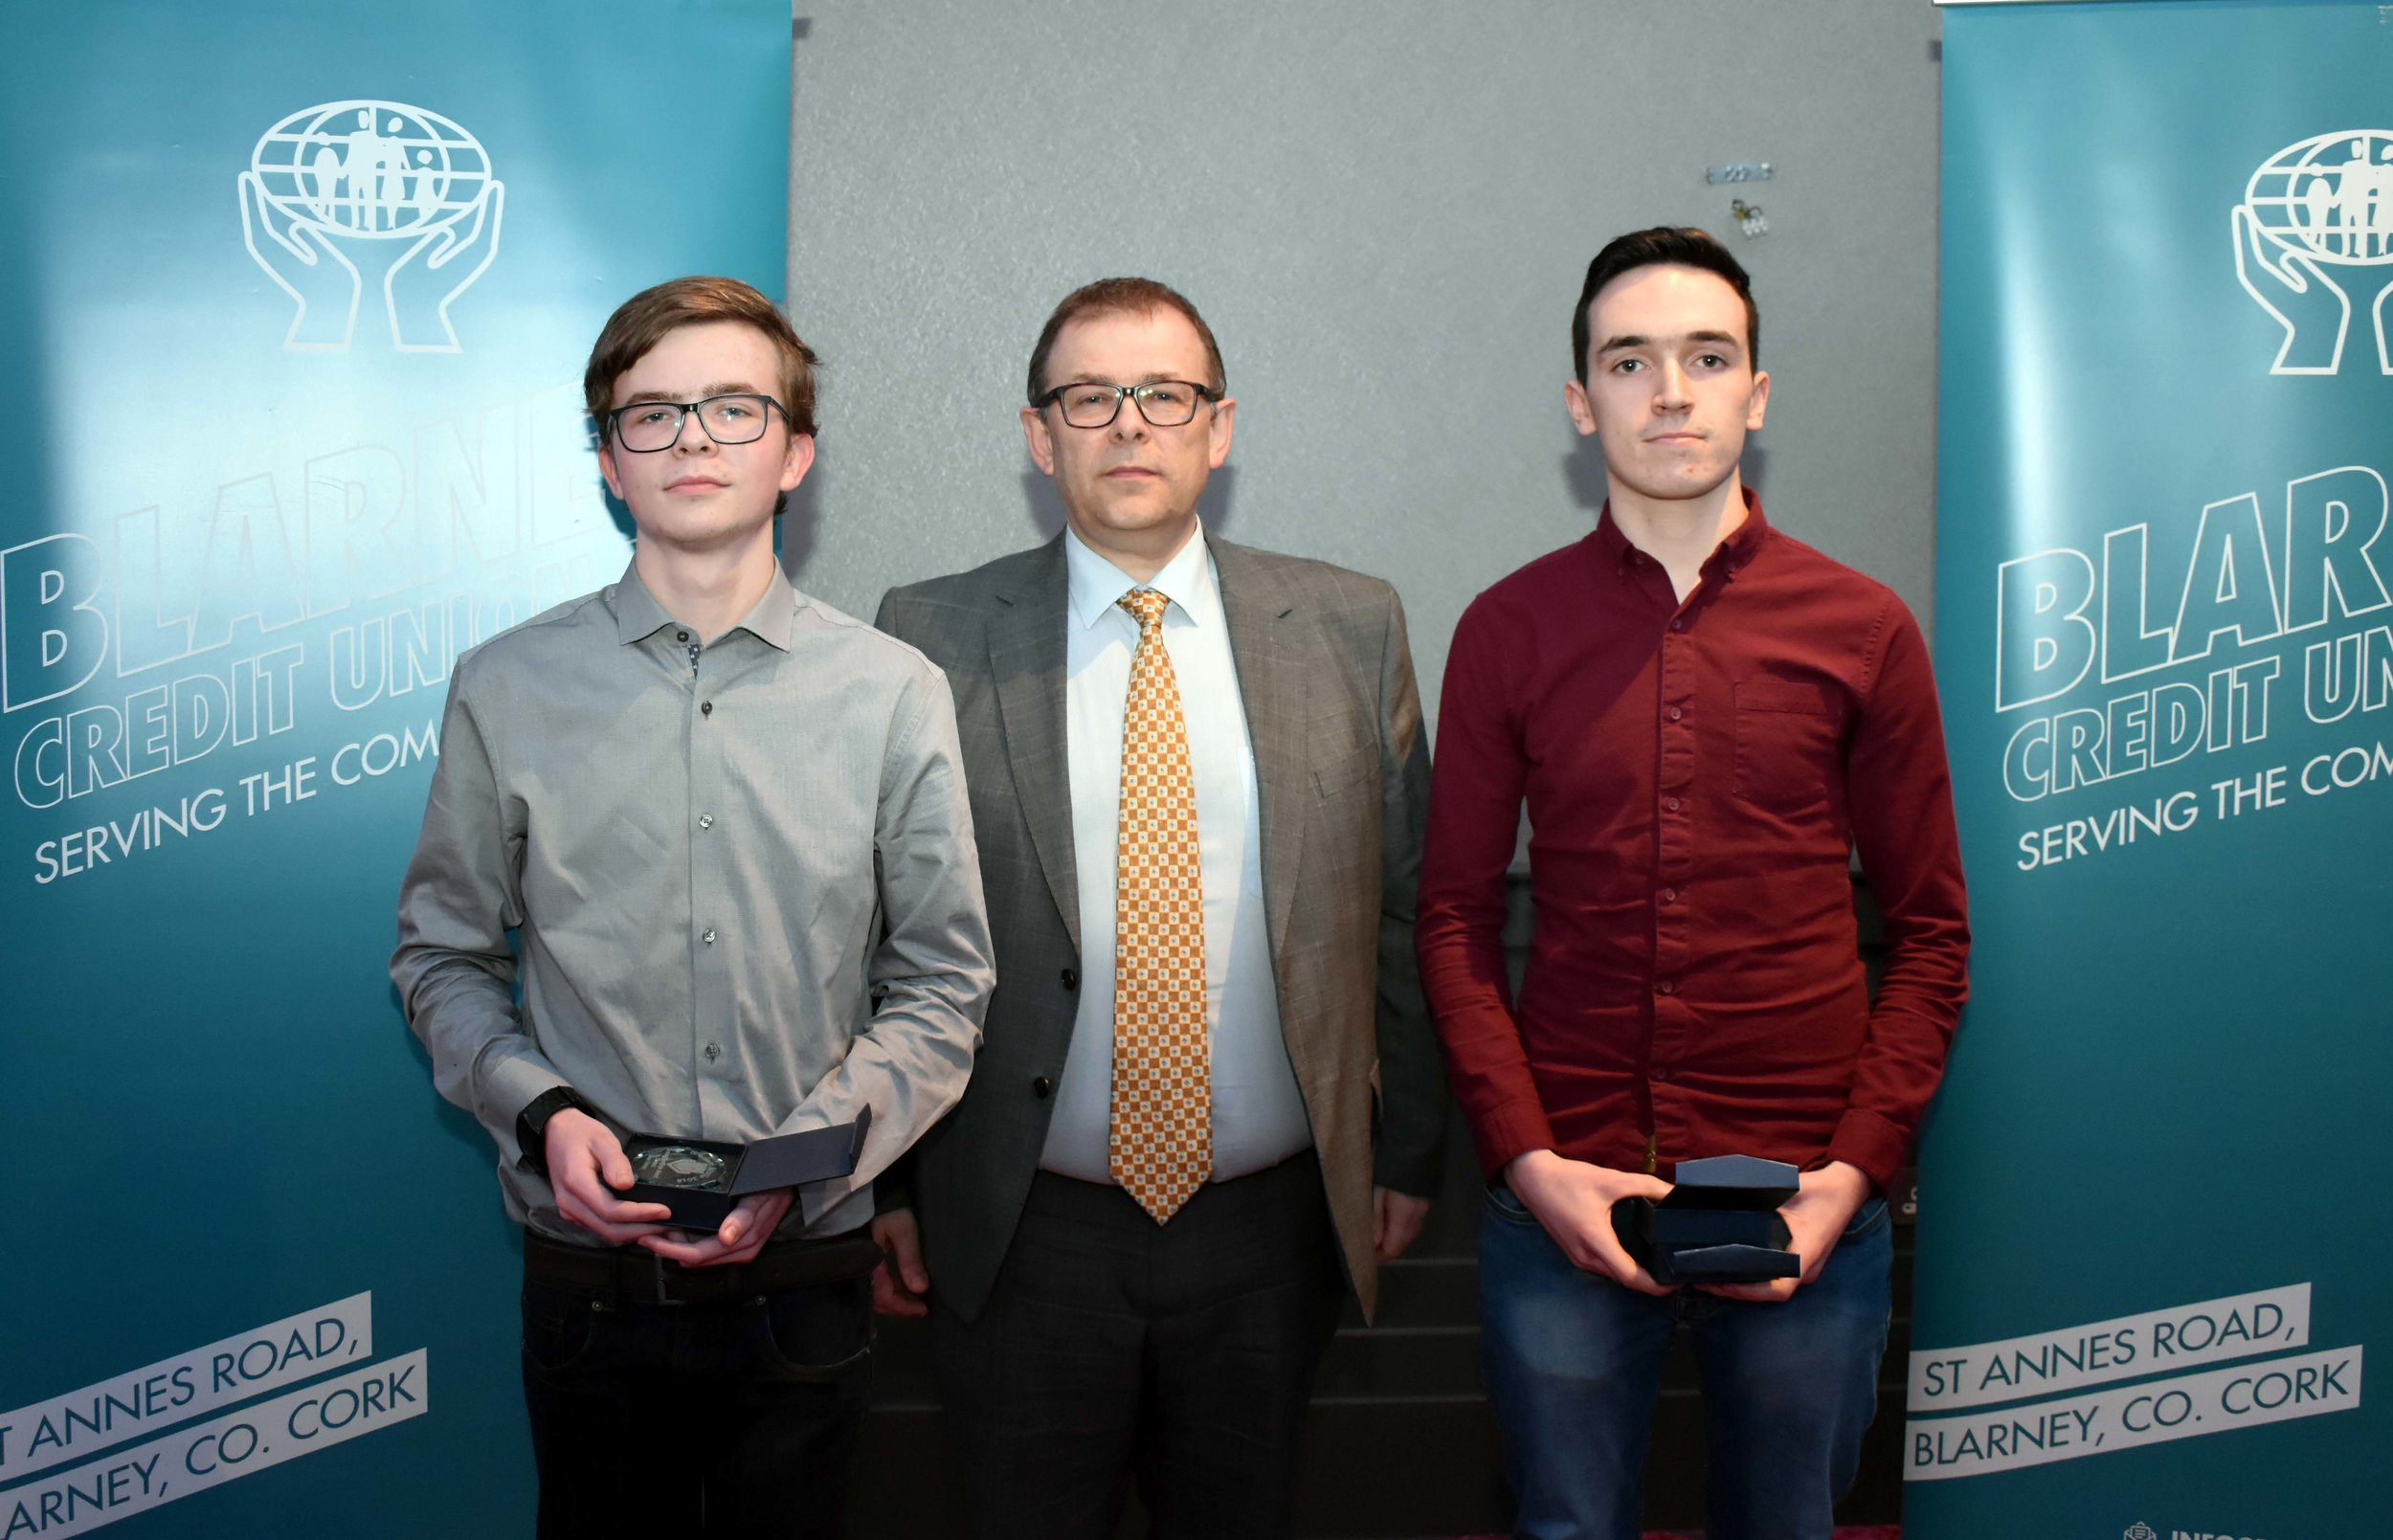 Senior Subject Award winners: Aaron Dorney (German), David Rea (Physics and Applied Maths)(Pictured with Mr. Mark McGloughlin - BOM and Blarney Credit Union)